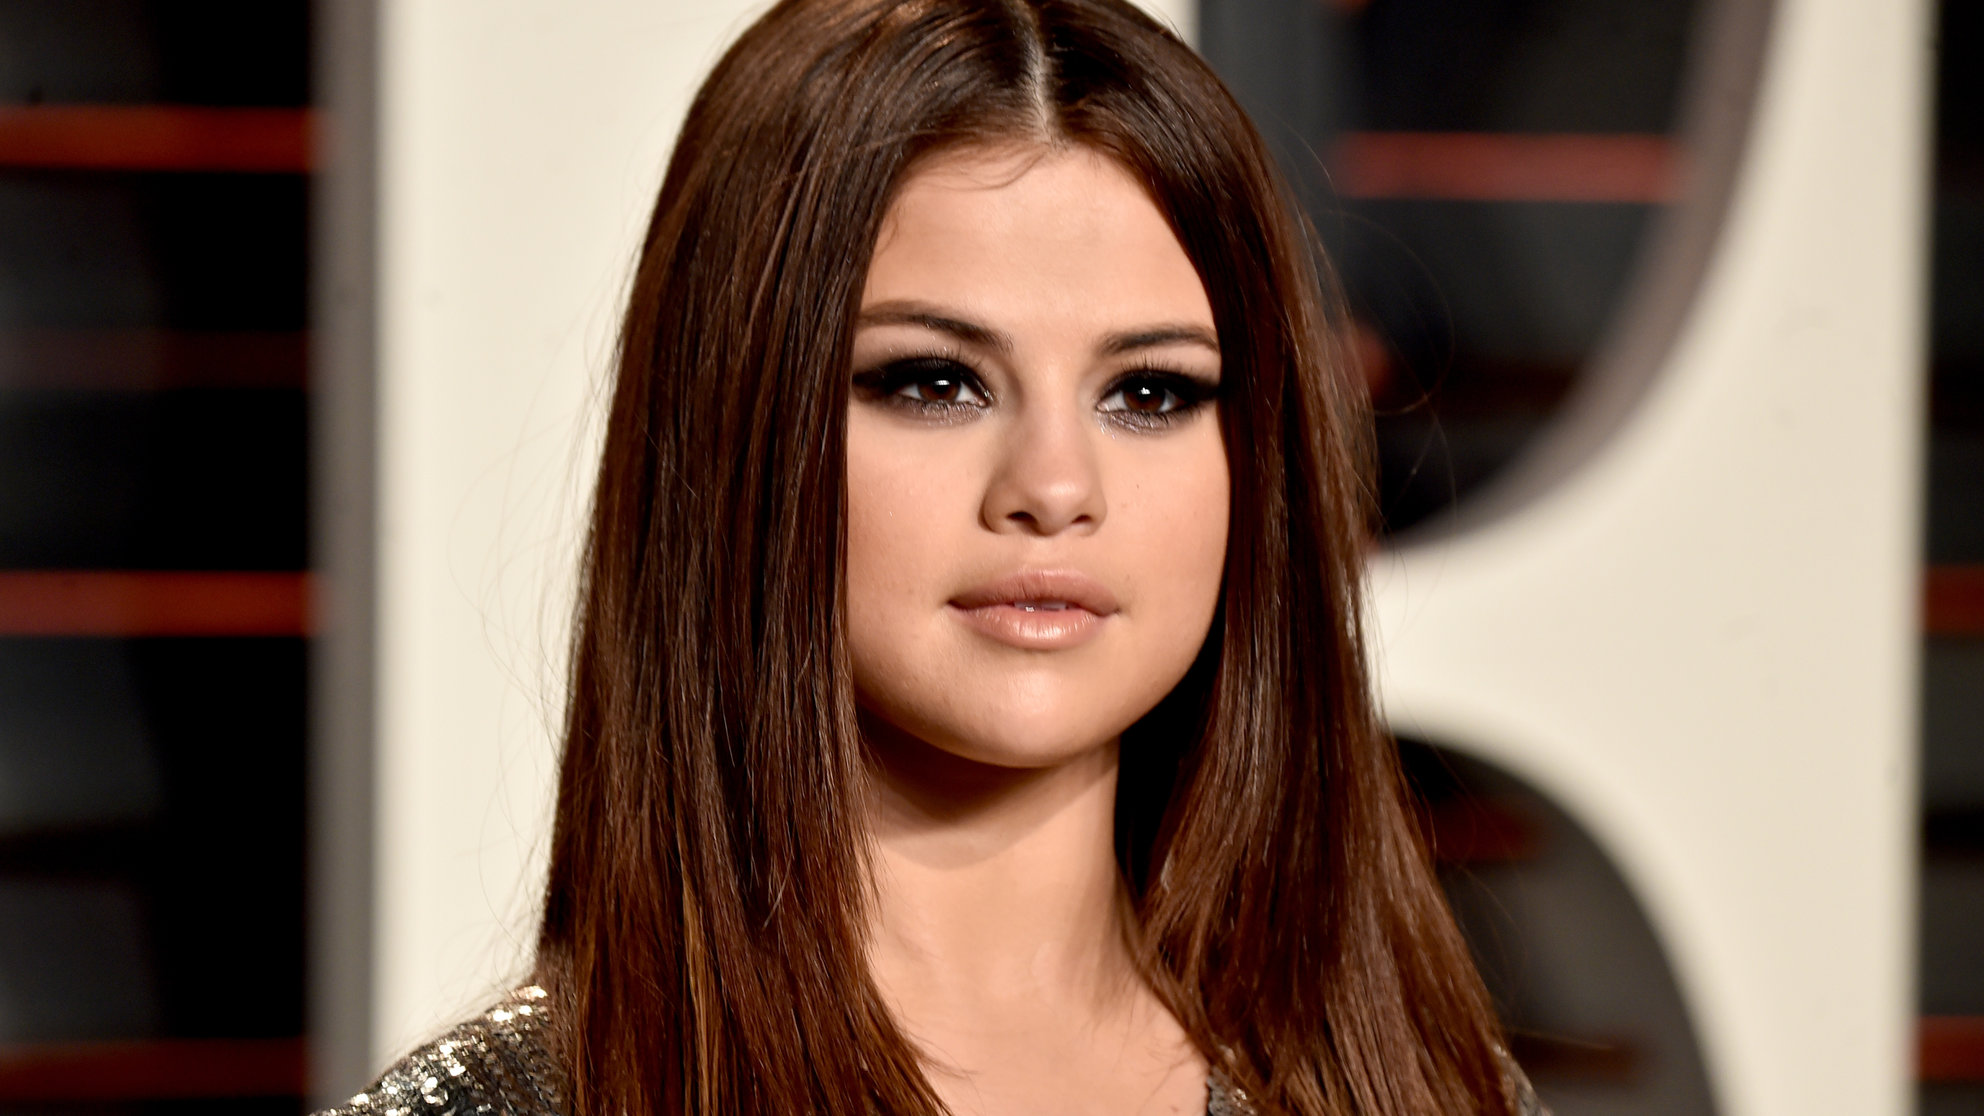 Selena Gomez Taking Time Off to Work on Depression, Anxiety Caused by Lupus